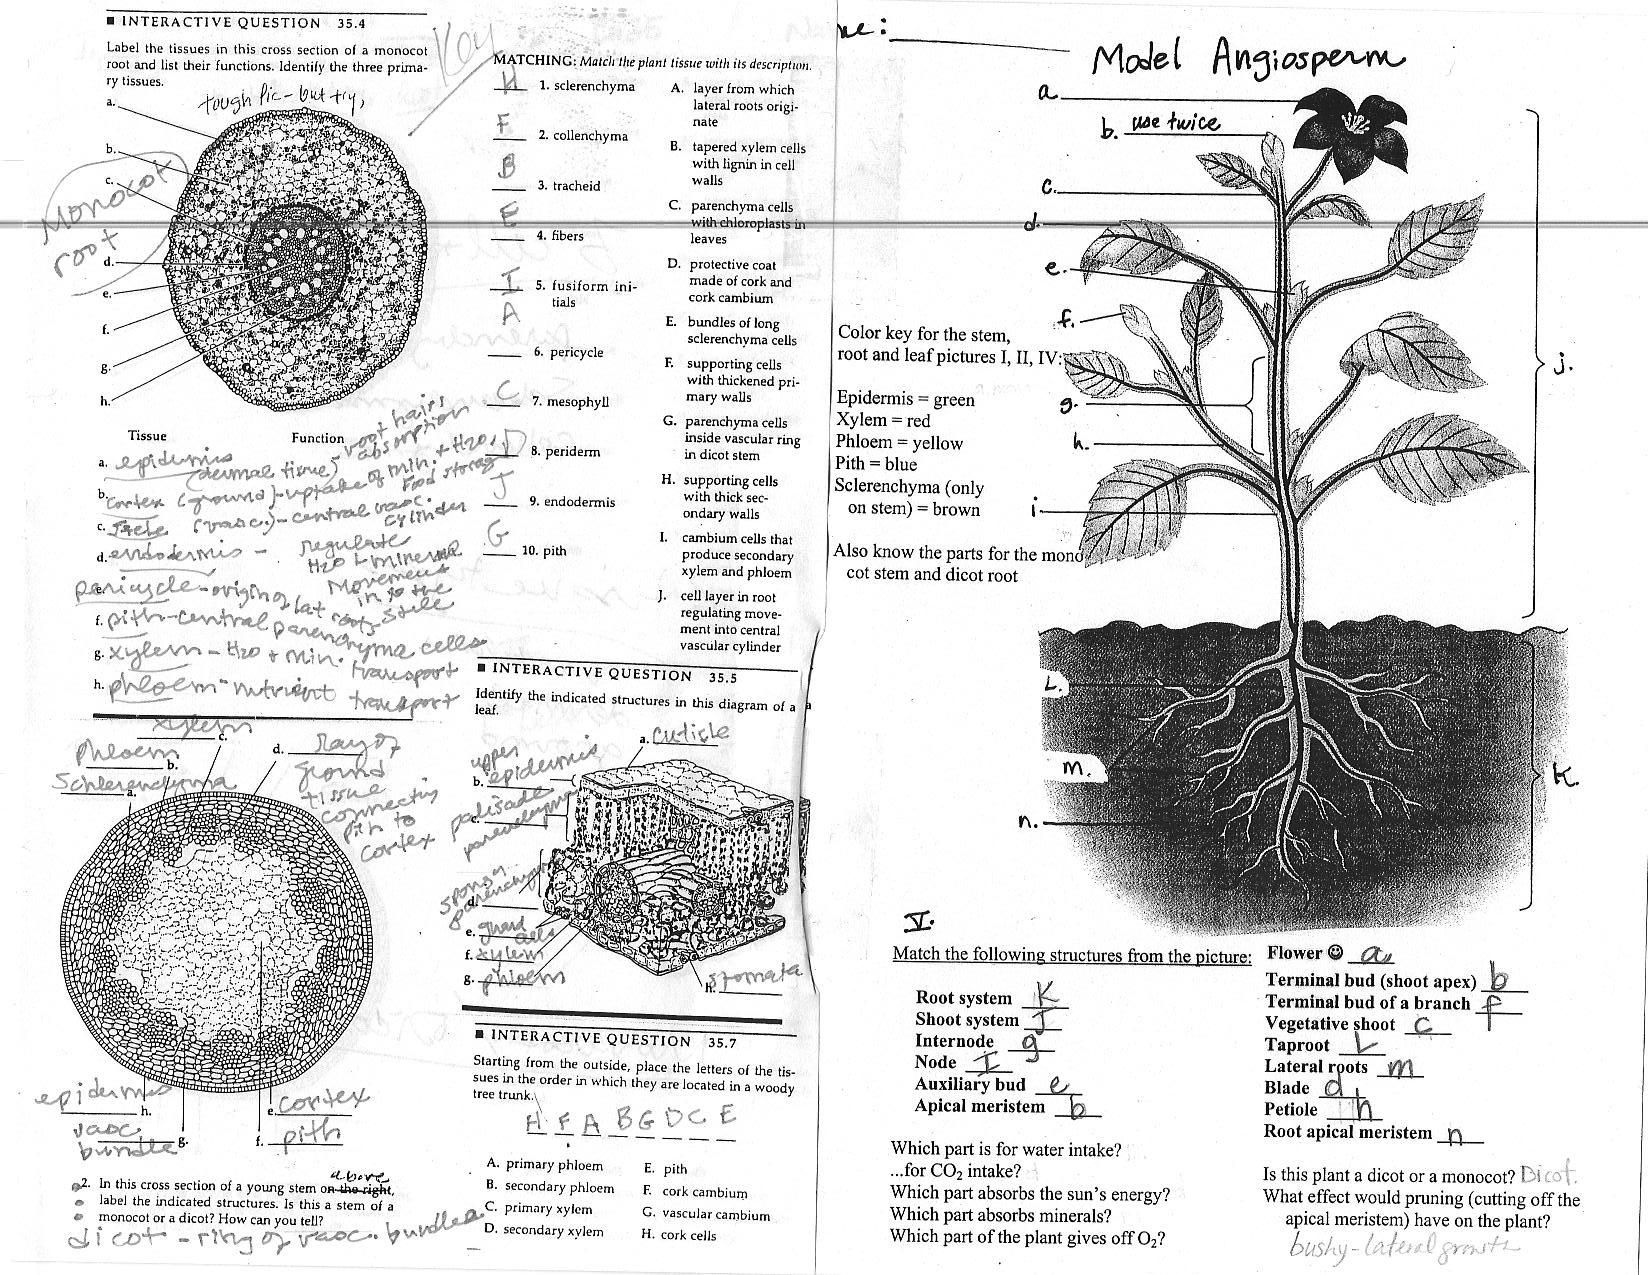 Plant Anatomy Carbon Dioxide Is Absorbed Through Pores In